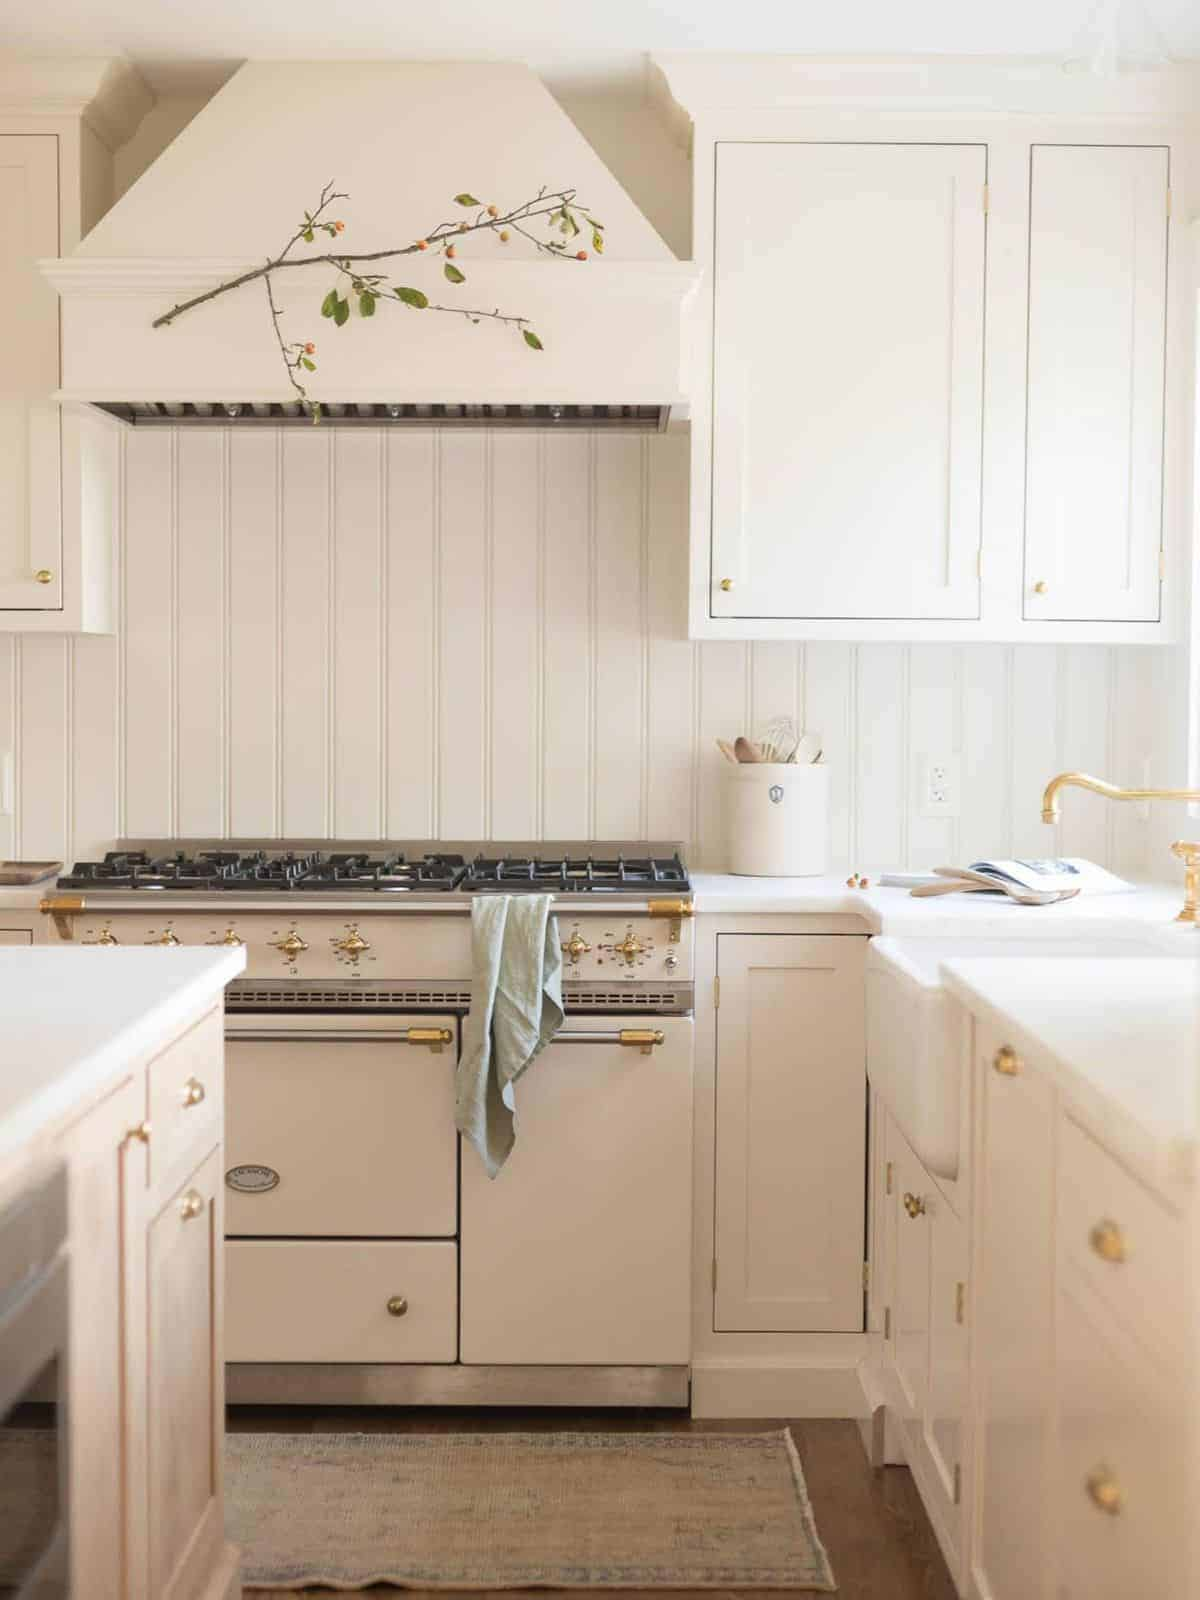 A cream kitchen with a Lacanche range and custom cabinets.